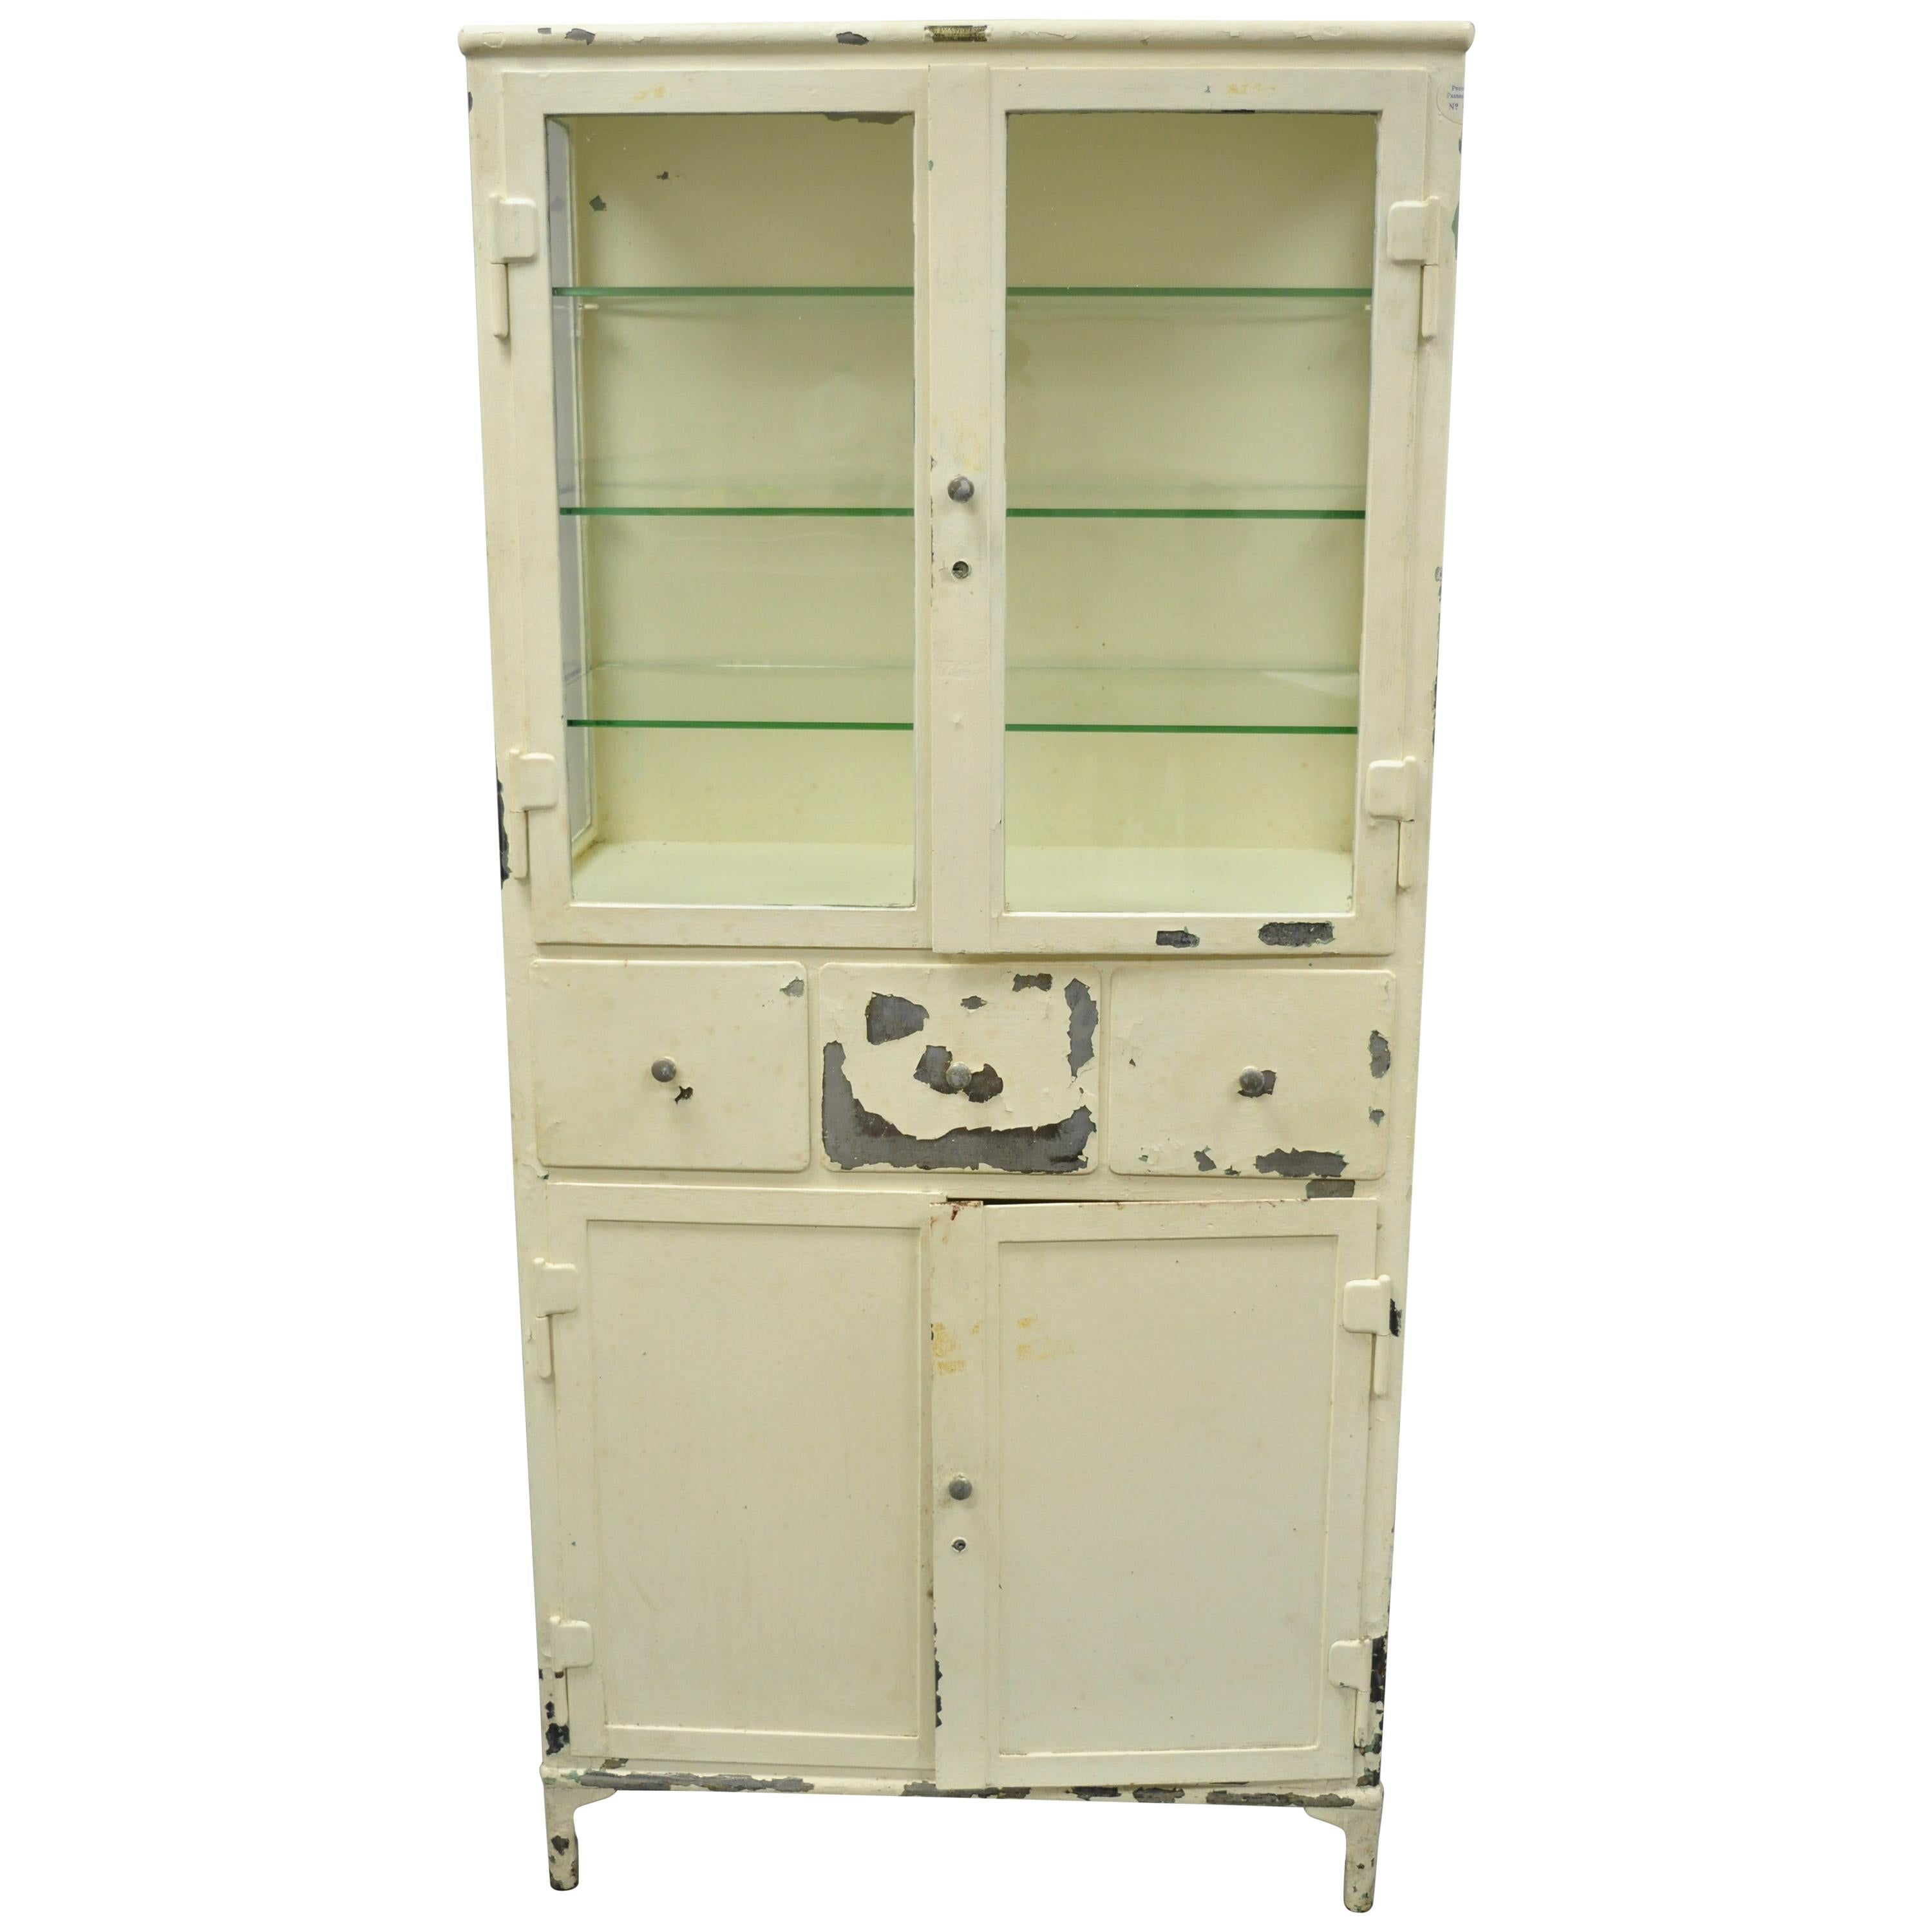 Ordinaire Antique Kny Scheerer Steel Metal Glass Medical Dental Pharmacy Cabinet